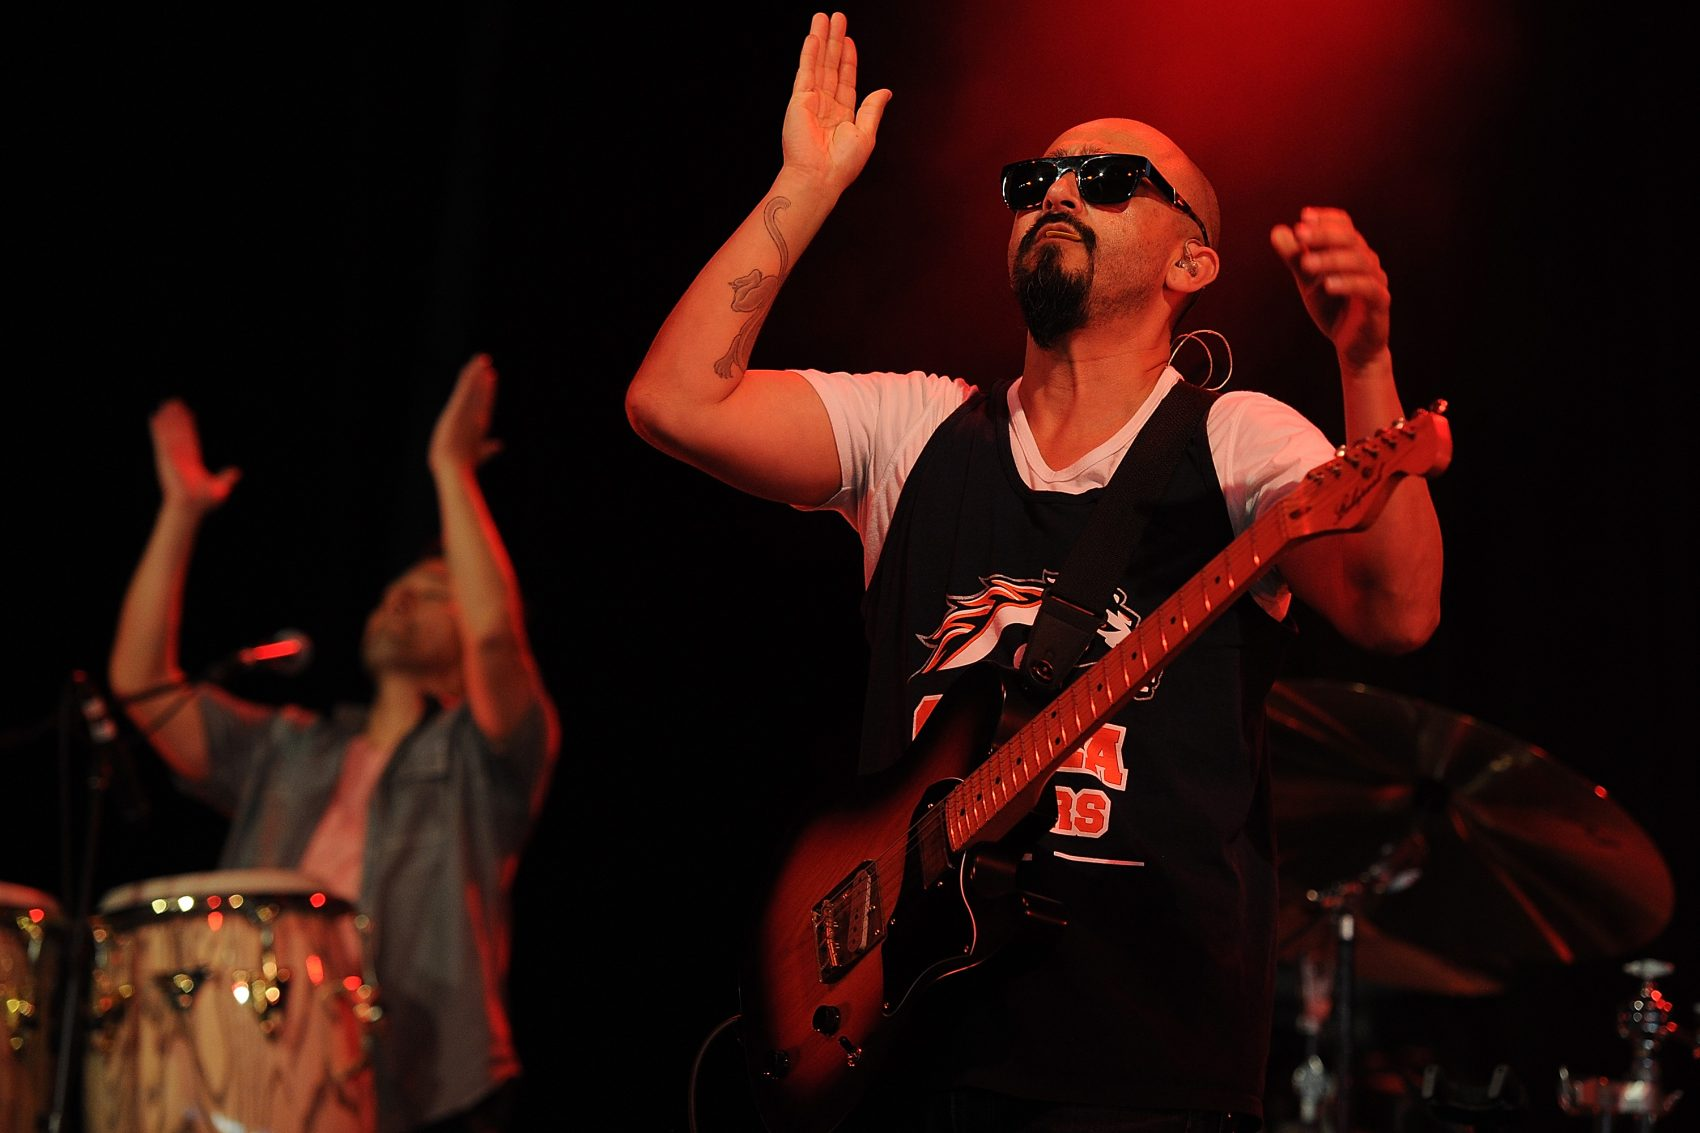 Raul Pacheco of Ozomatli performs live at the 2014 Byron Bay Bluesfest on April 21, 2014 in Byron Bay, Australia. (Matt Roberts/Getty Images)